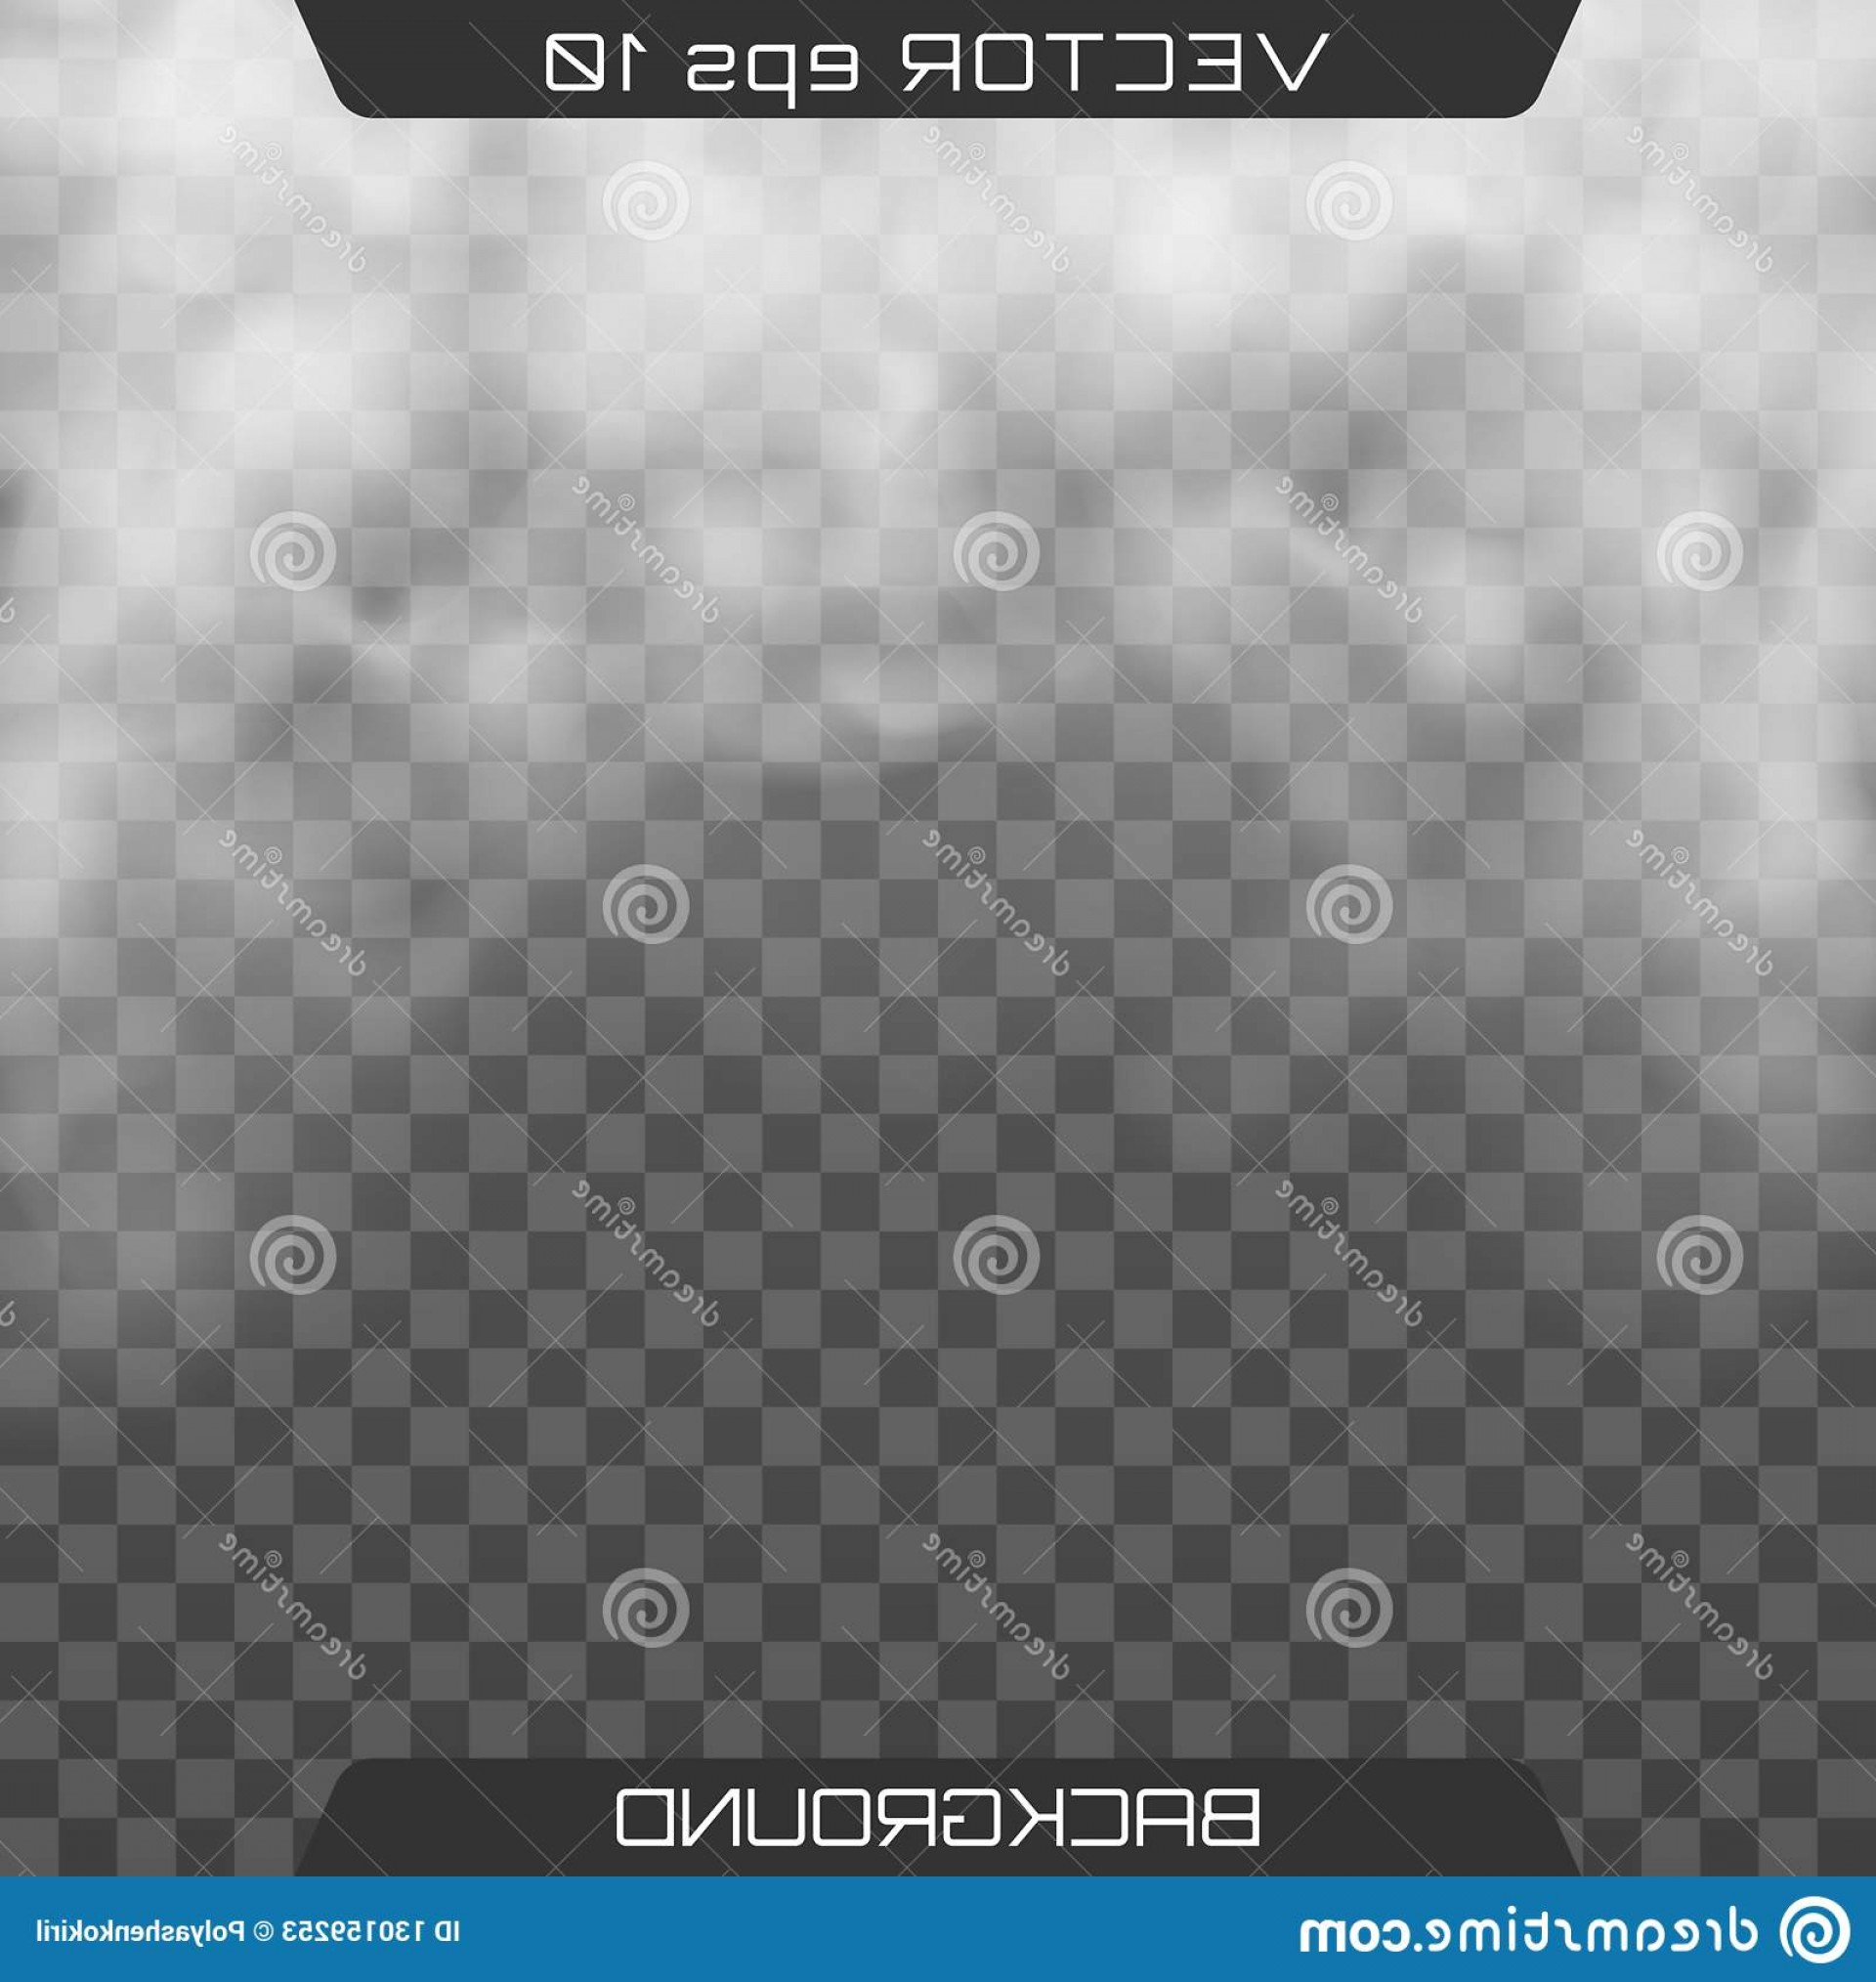 Billow Smoke Vector: Fog Smoke Isolated Transparent Special Effect Realistic Cloud Dark Background Vector Image